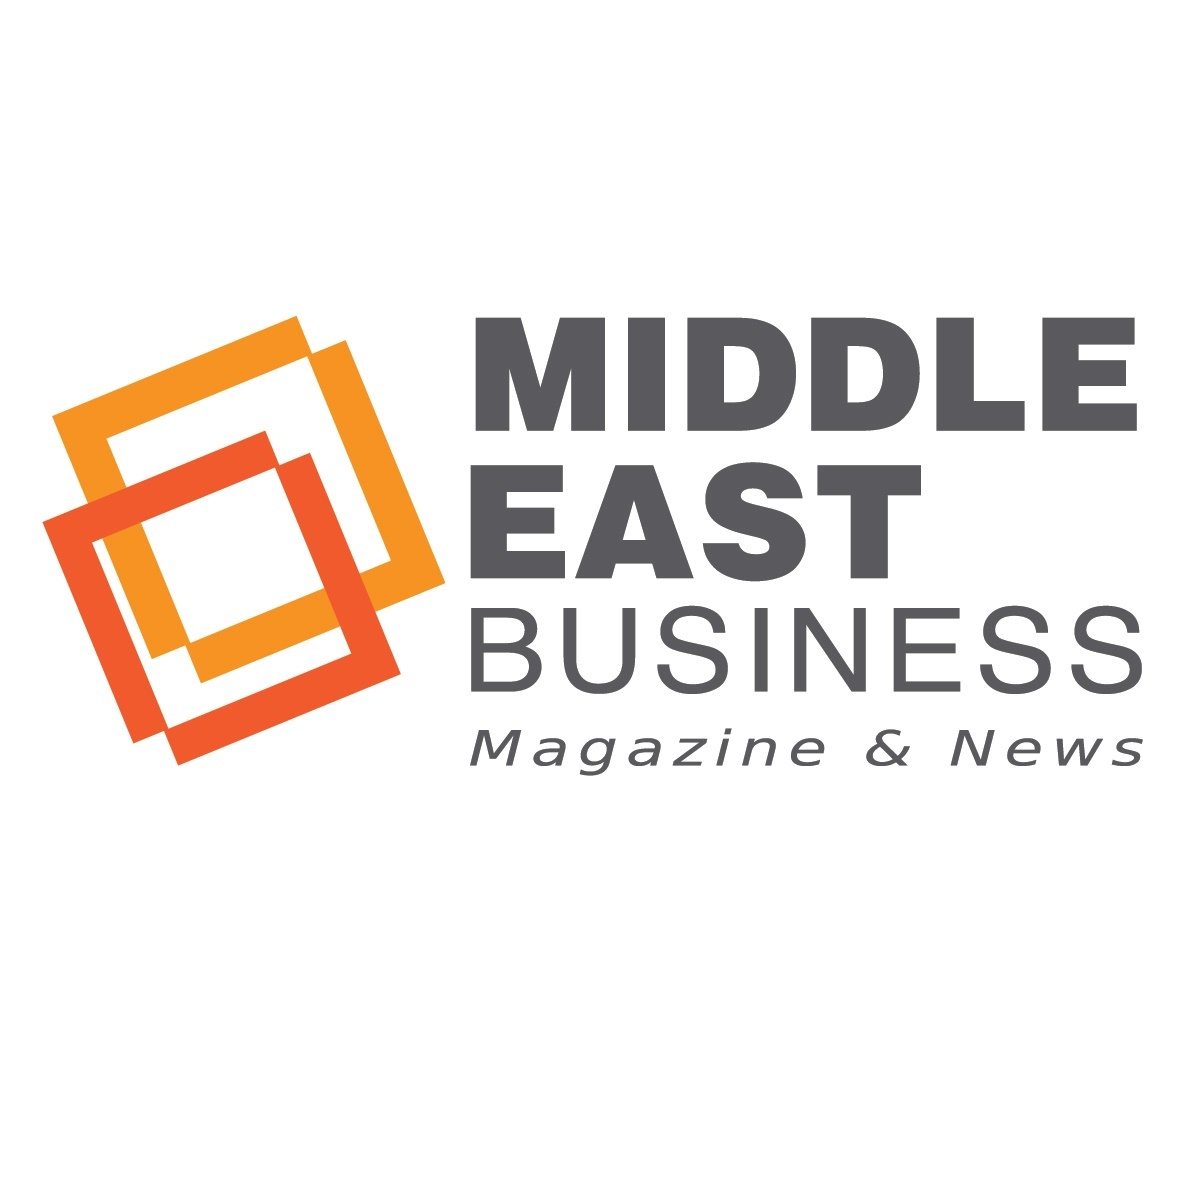 MiddleEast-Business